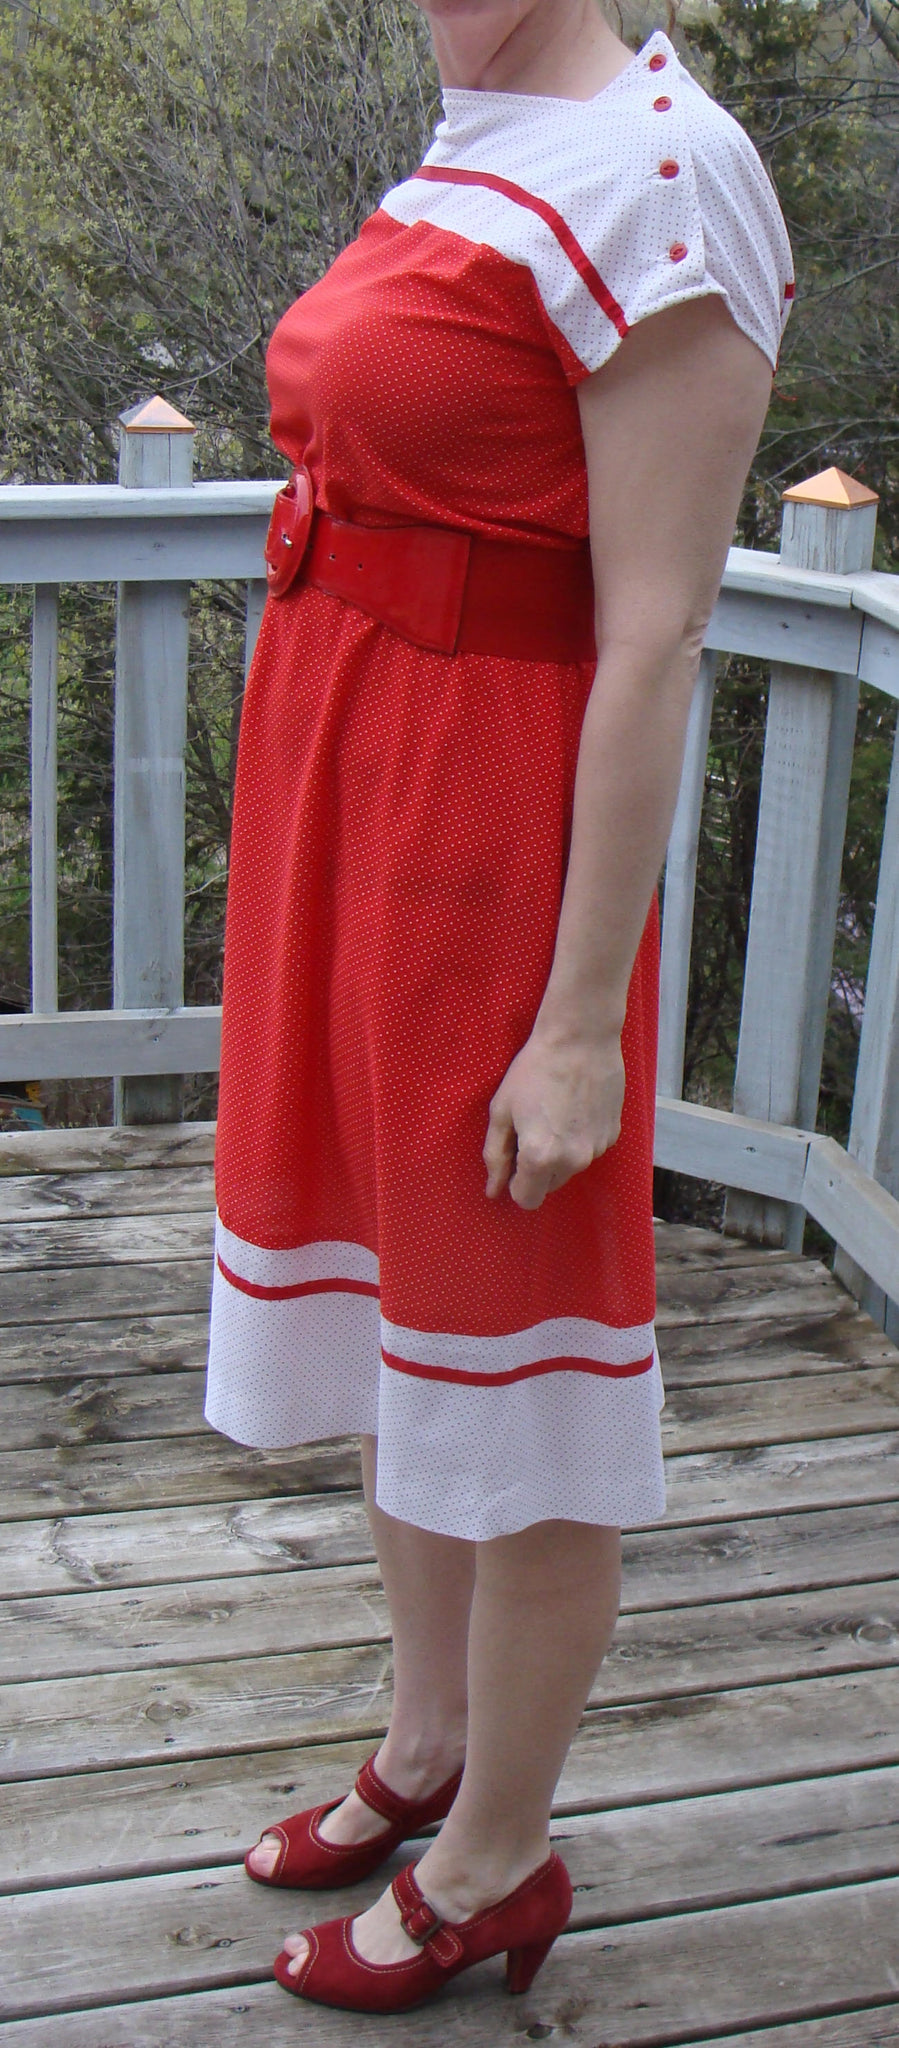 RED and WHITE POLKADOT early 1980's dress vintage 80's M (A5)